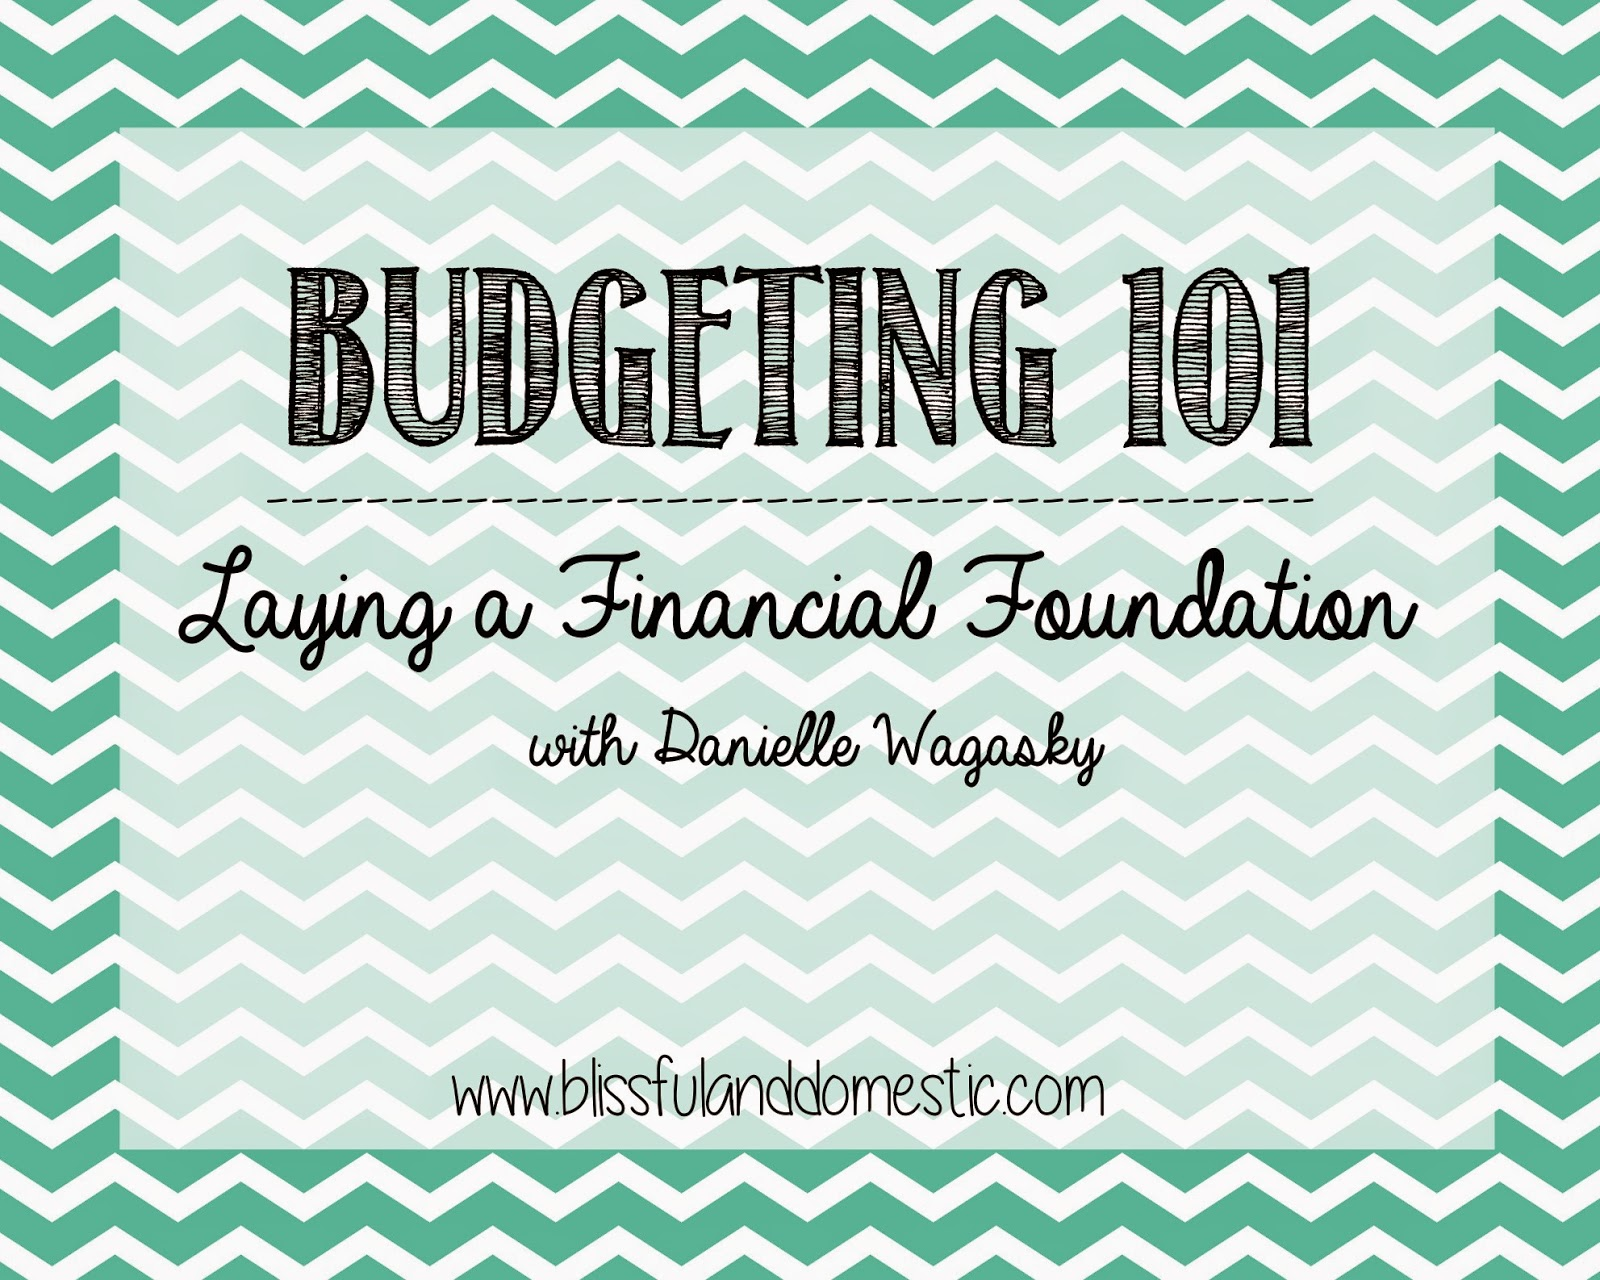 Budgeting 101 Videos: Laying a Financial Foundation  www.blissfulanddomestic.com  Learning to Live a Beautiful Life on Less